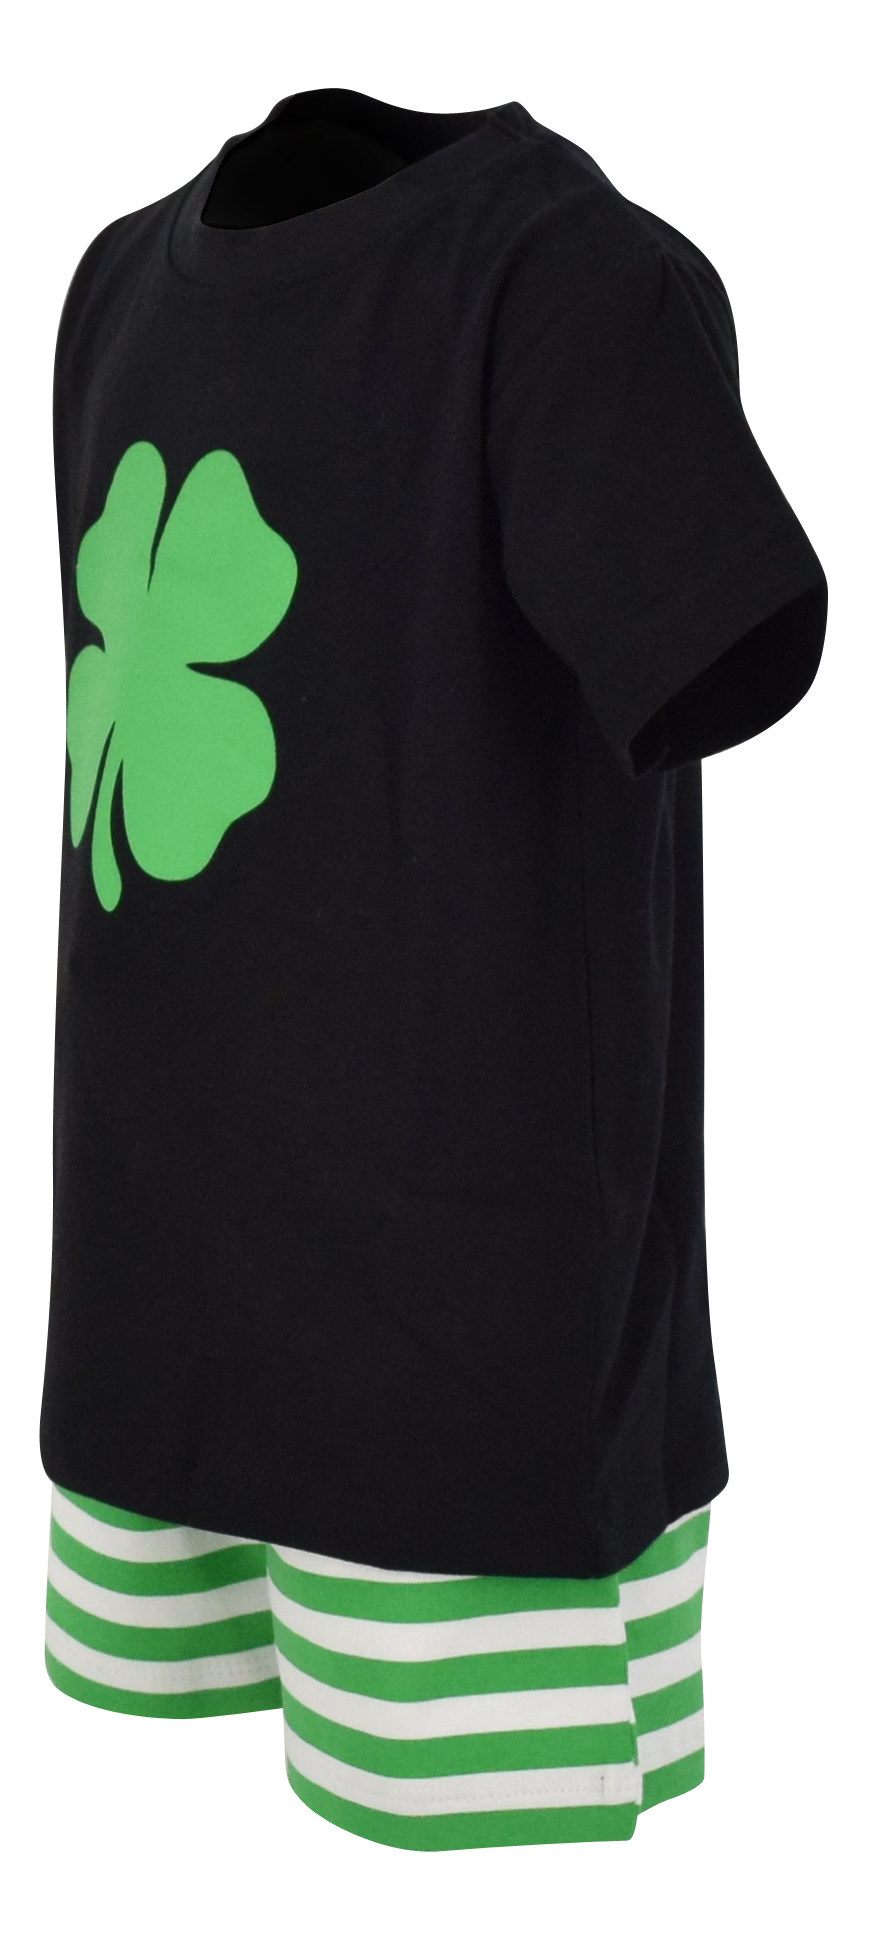 Boys-2-Piece-ST-Patricks-Day-Clover-Outfit-2t-3t-4t-5-6-7-8-Toddler-Kids-Clothes thumbnail 8